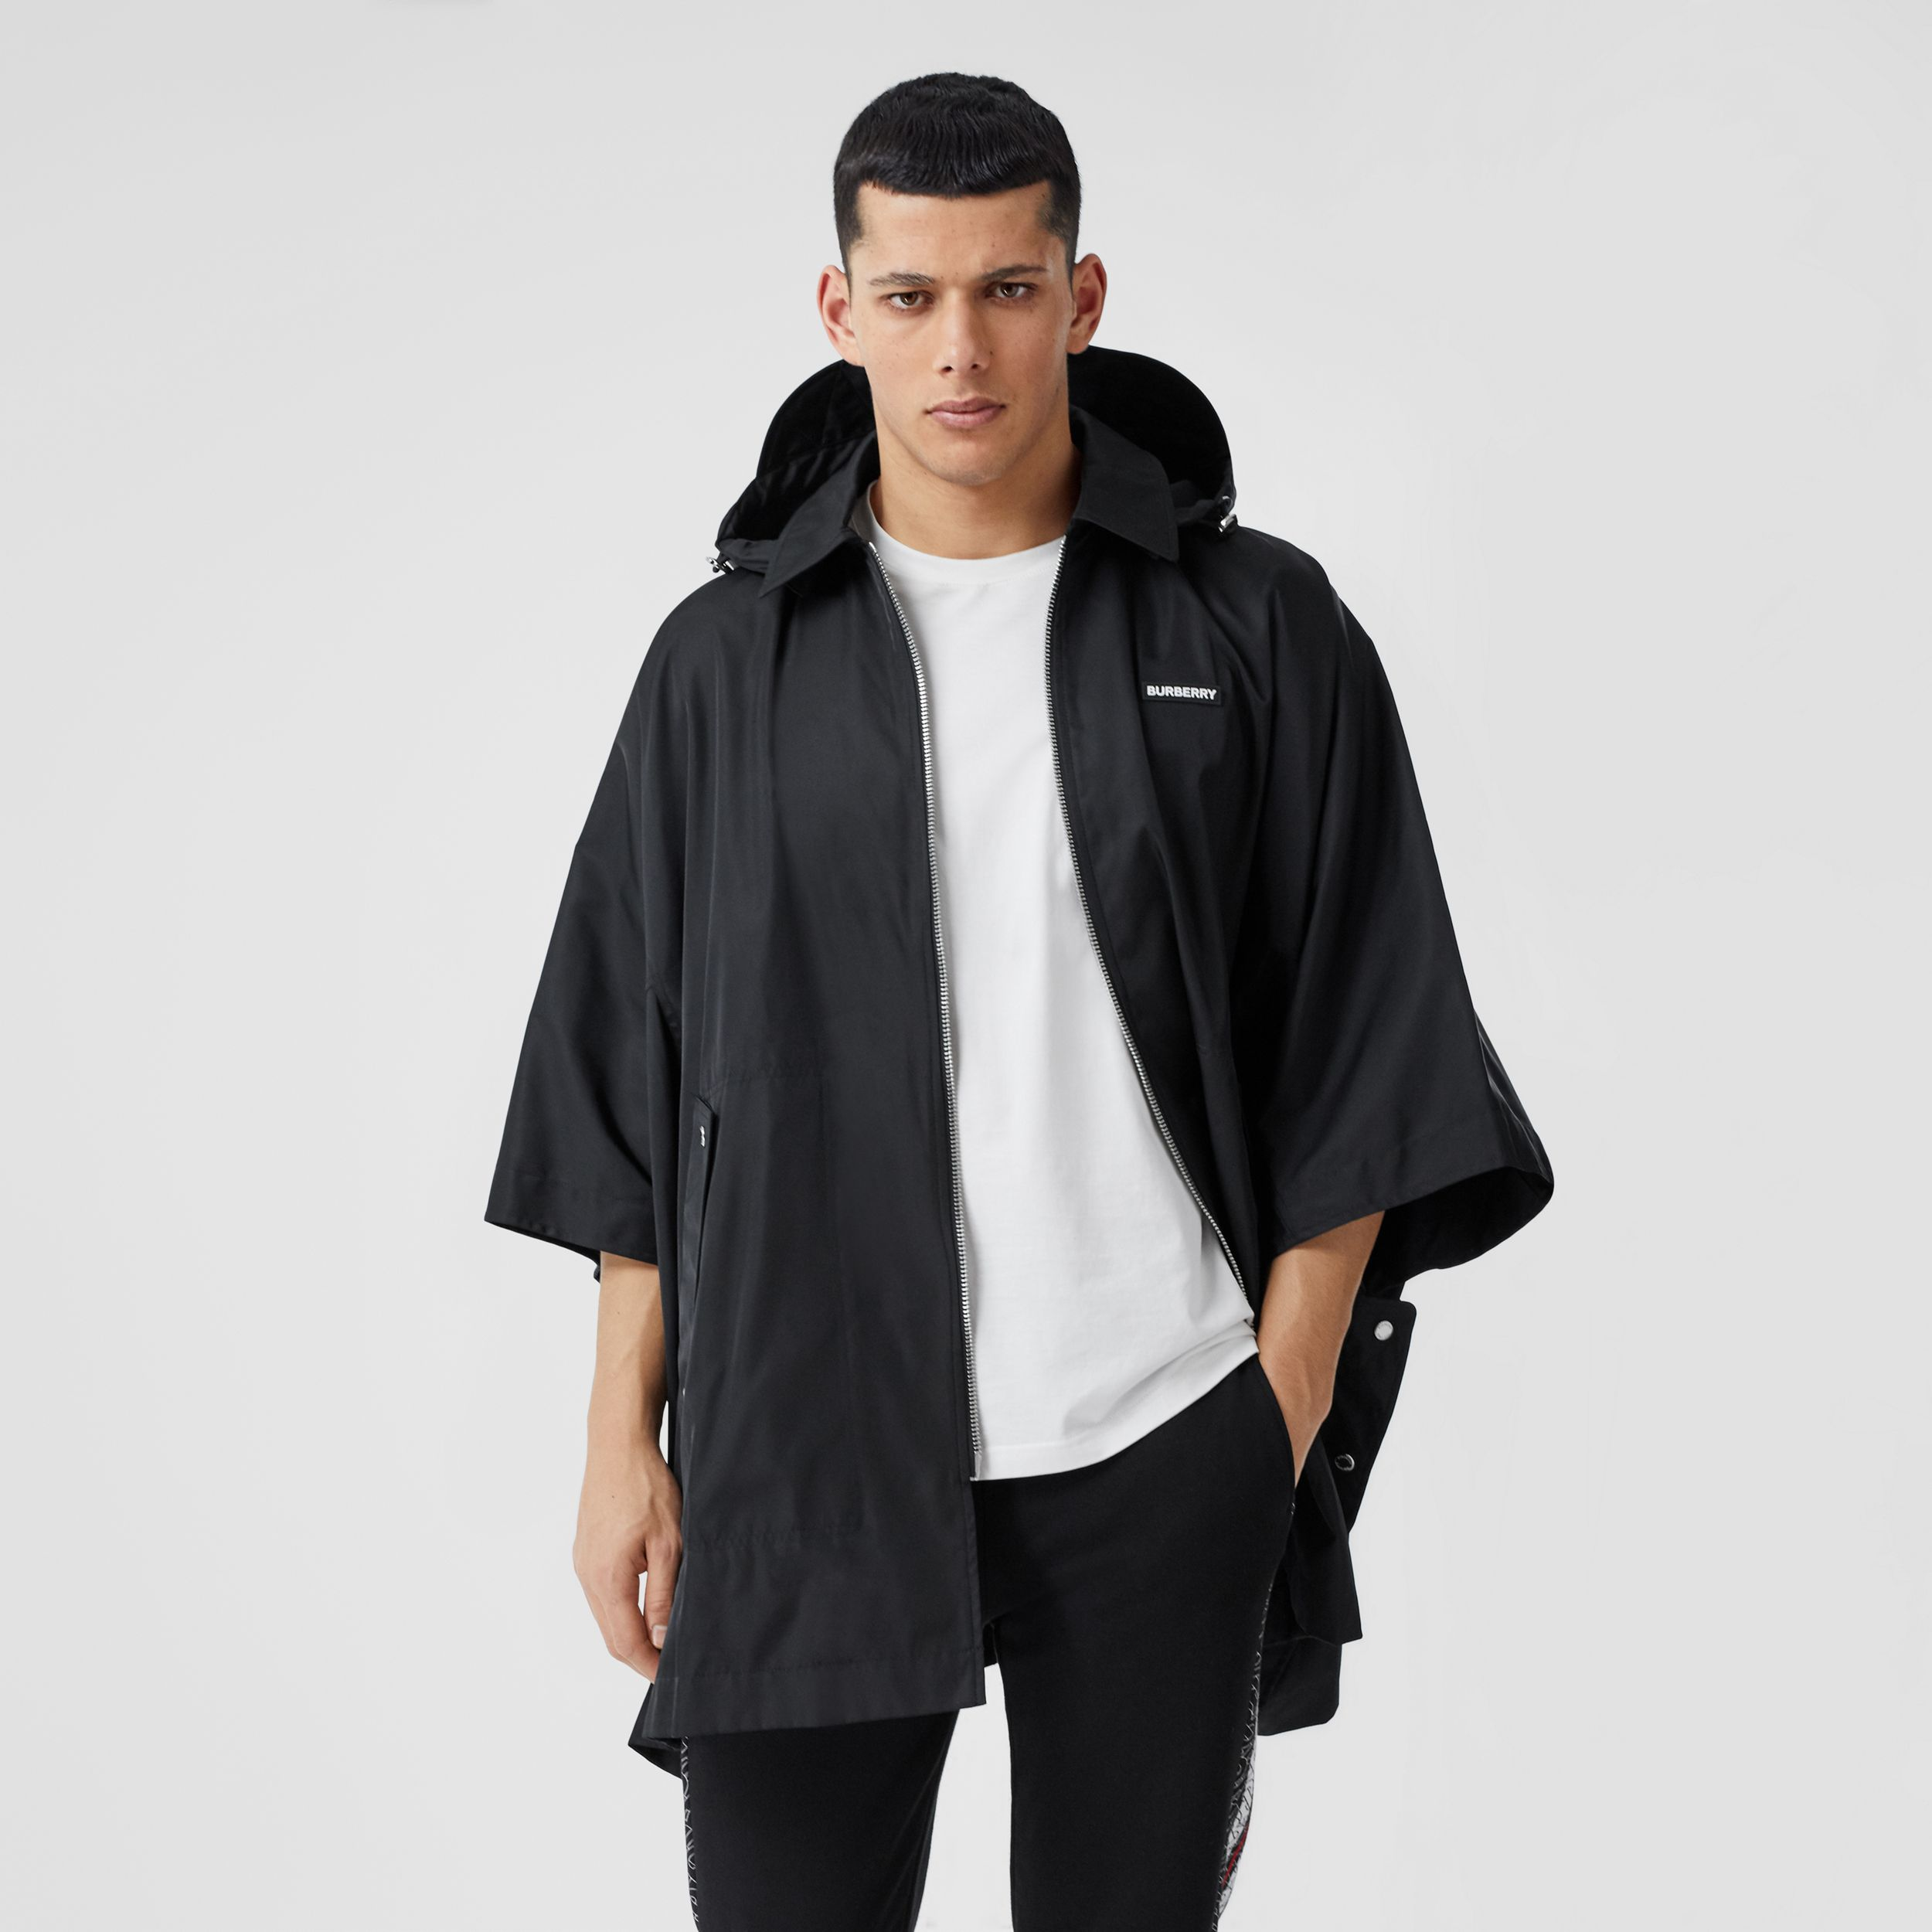 Detachable Hood Logo Appliqué ECONYL® Cape in Black | Burberry United States - 4